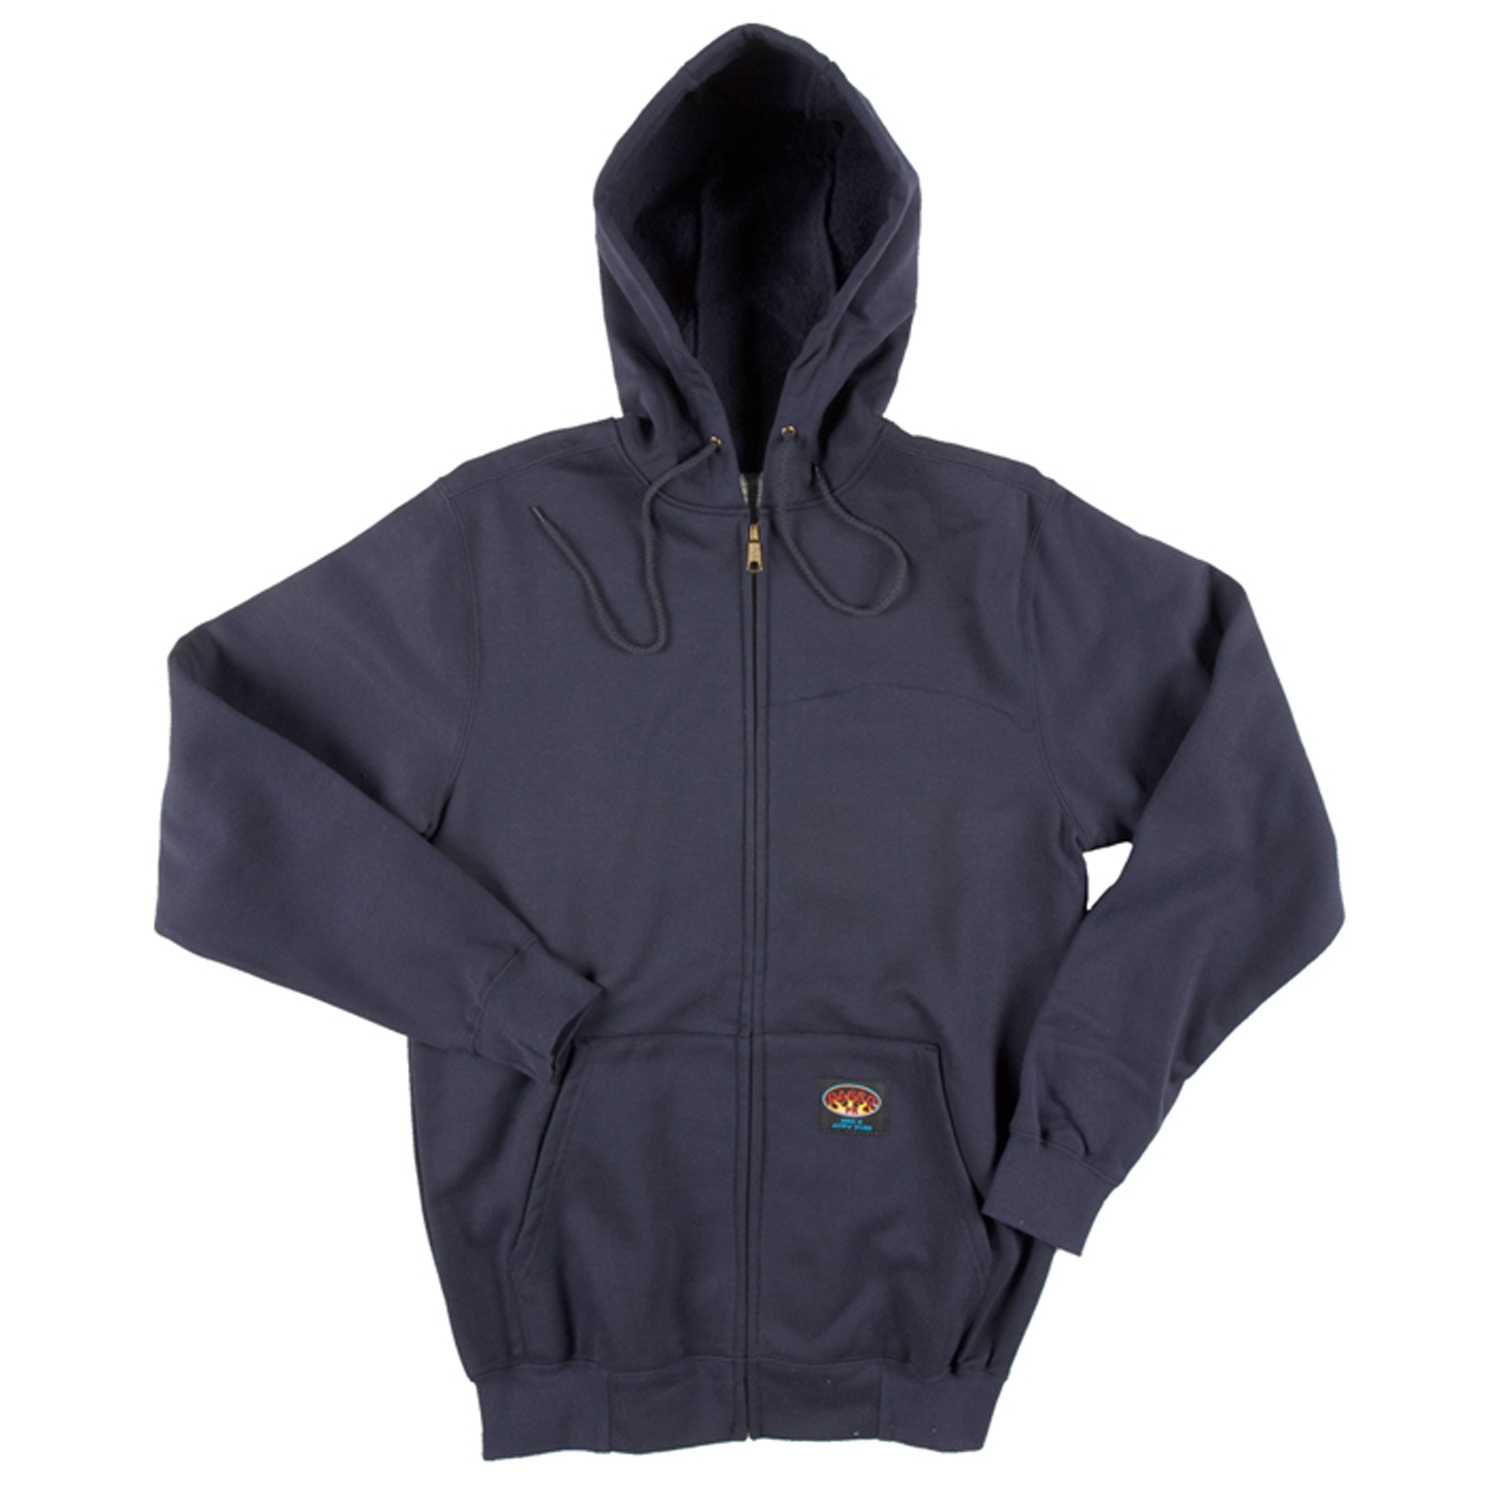 Rasco Arc Rated Hoodie Nsf1151 Munro S Safety